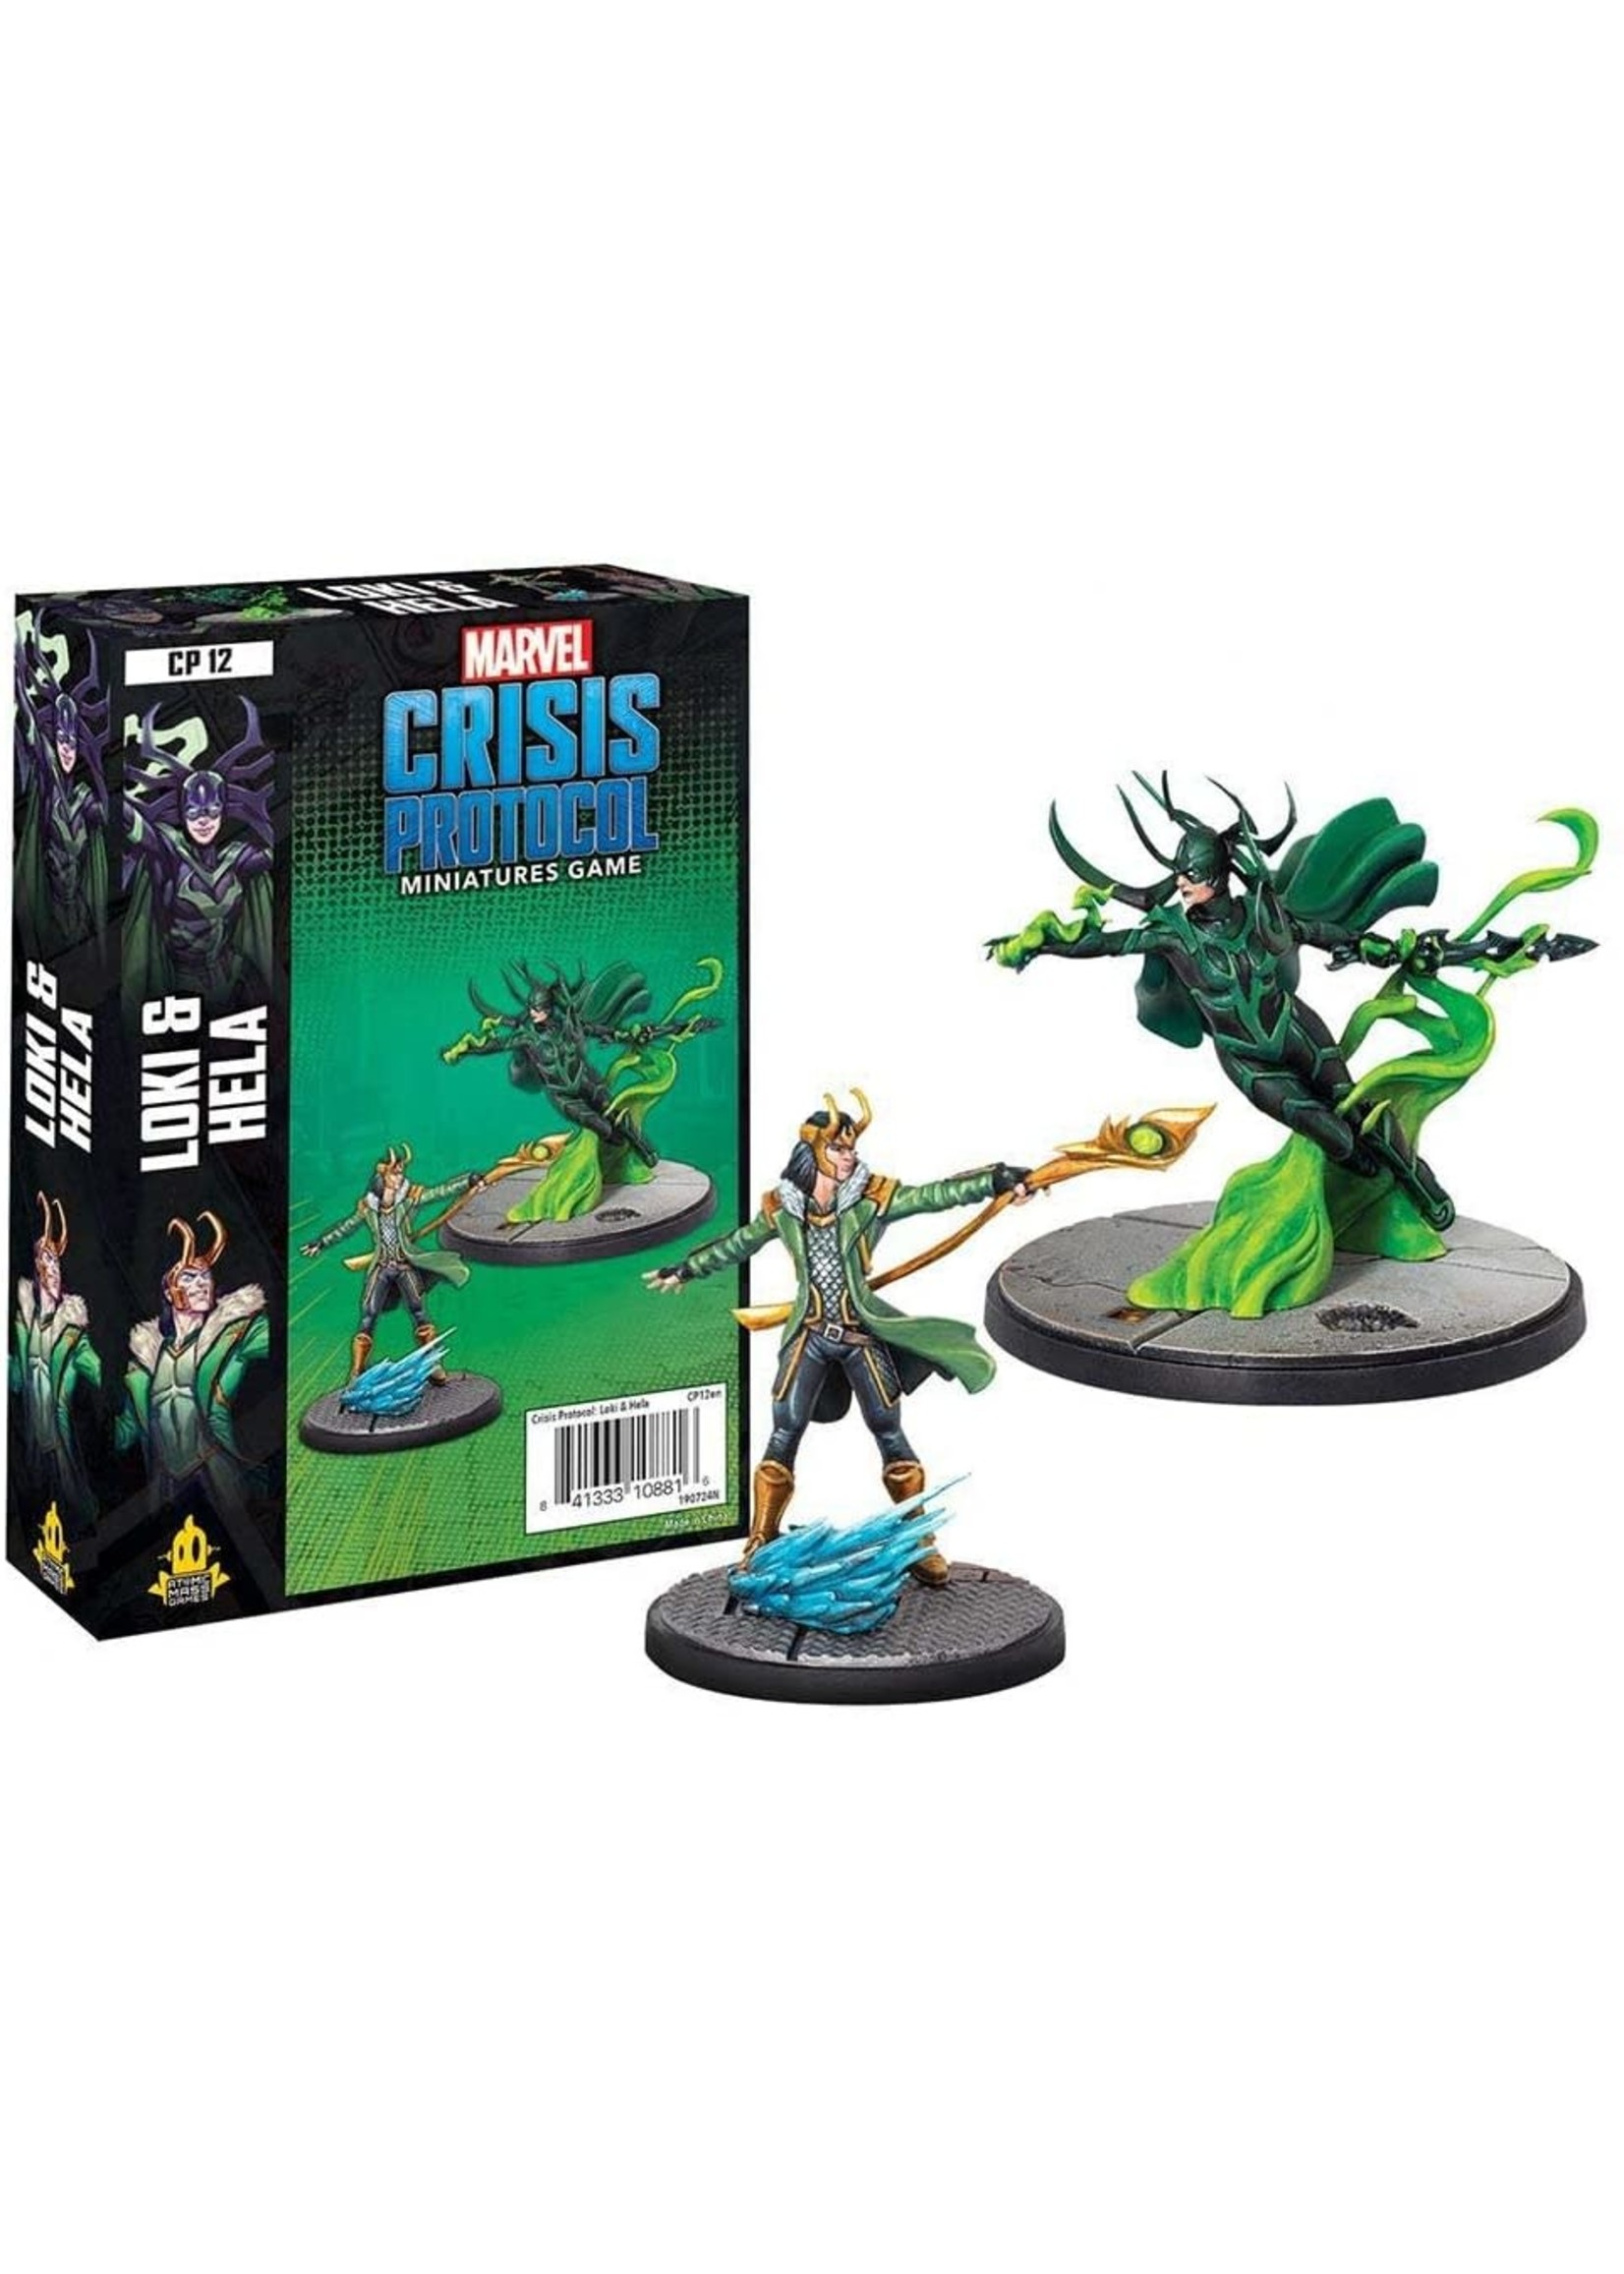 Atomic Mass Games Marvel Crisis Protocol: Loki & Hella